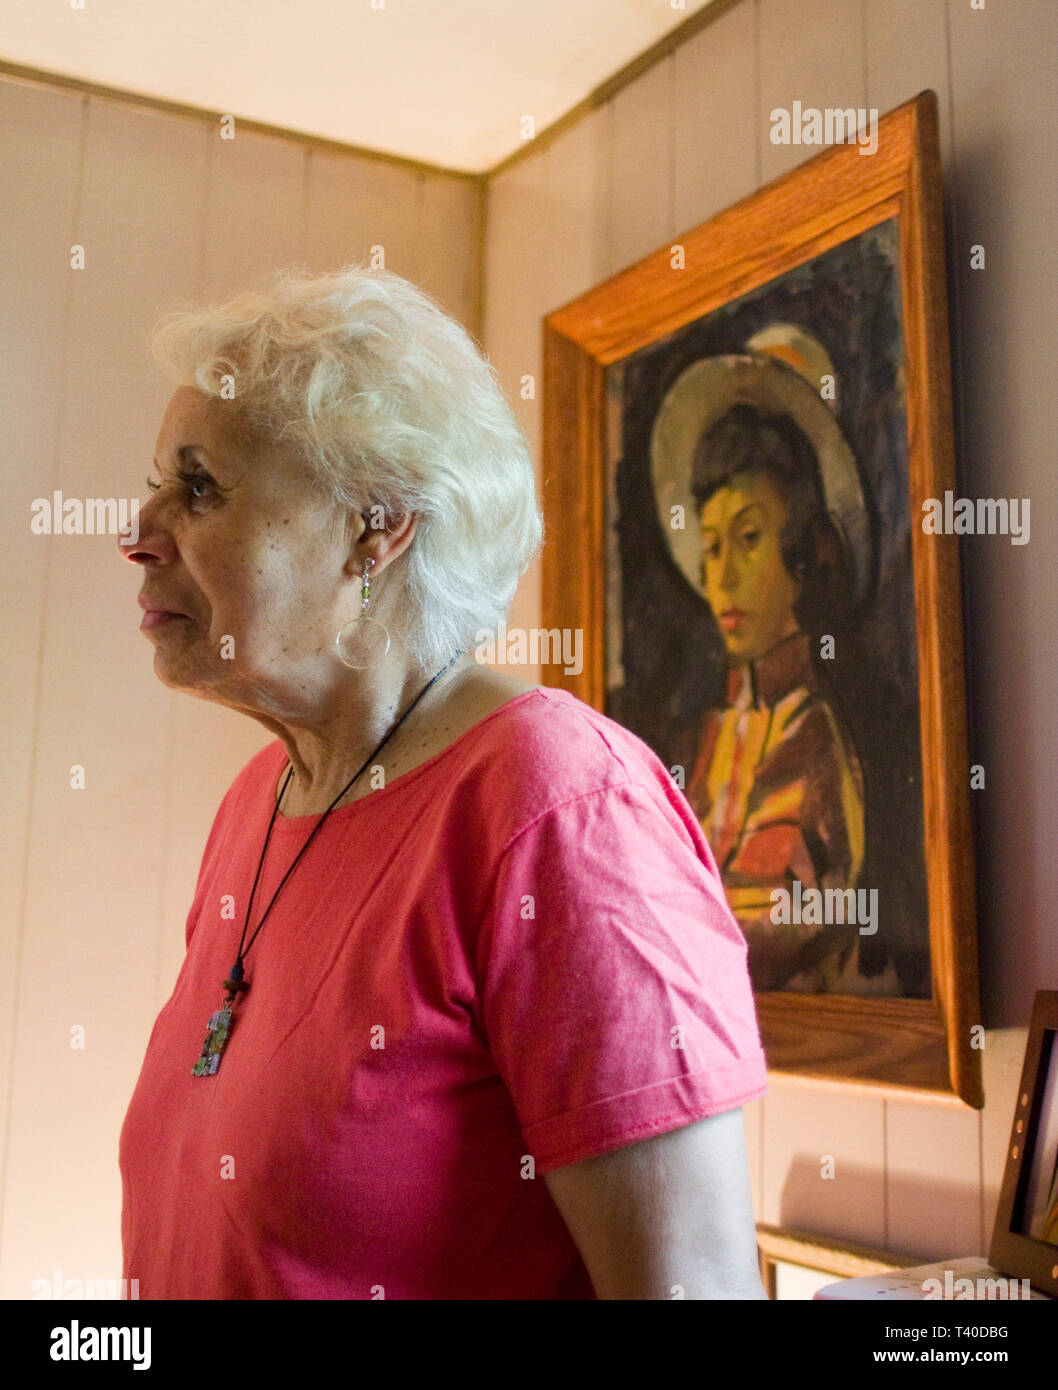 senior African American woman in her home in front of a painting of herself as a younger woman - Stock Image